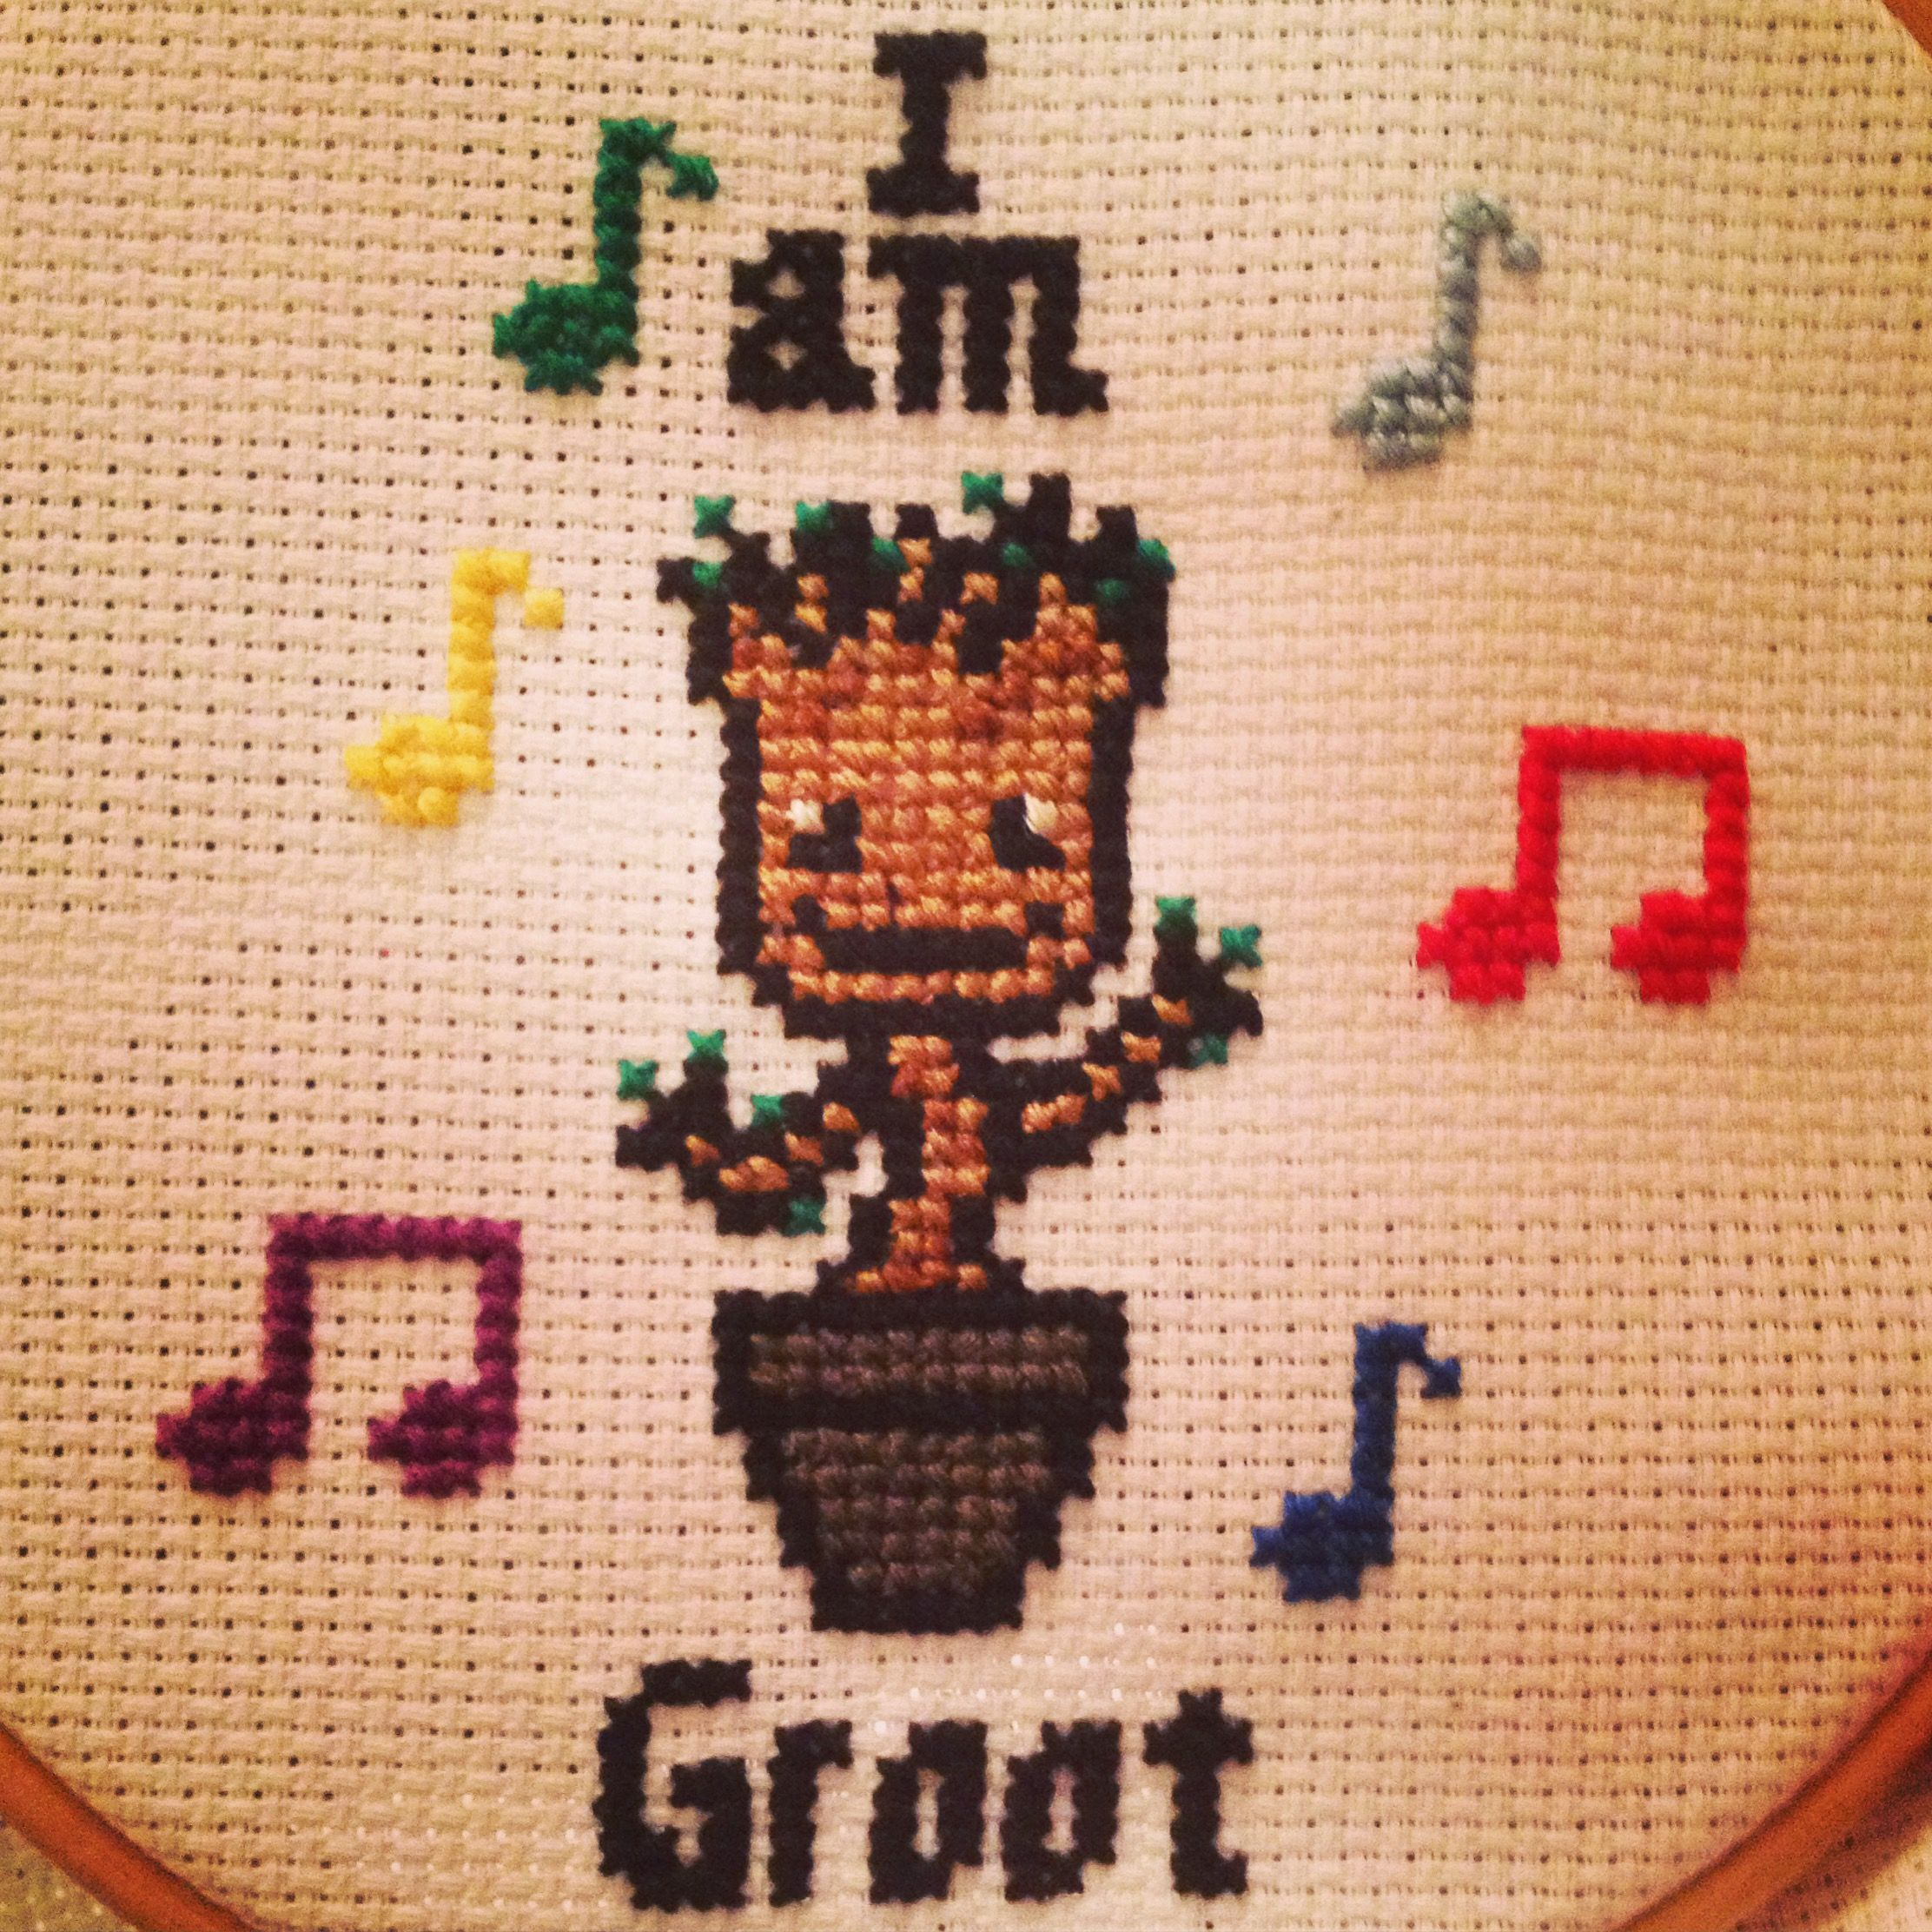 My dancing baby Groot cross stitch